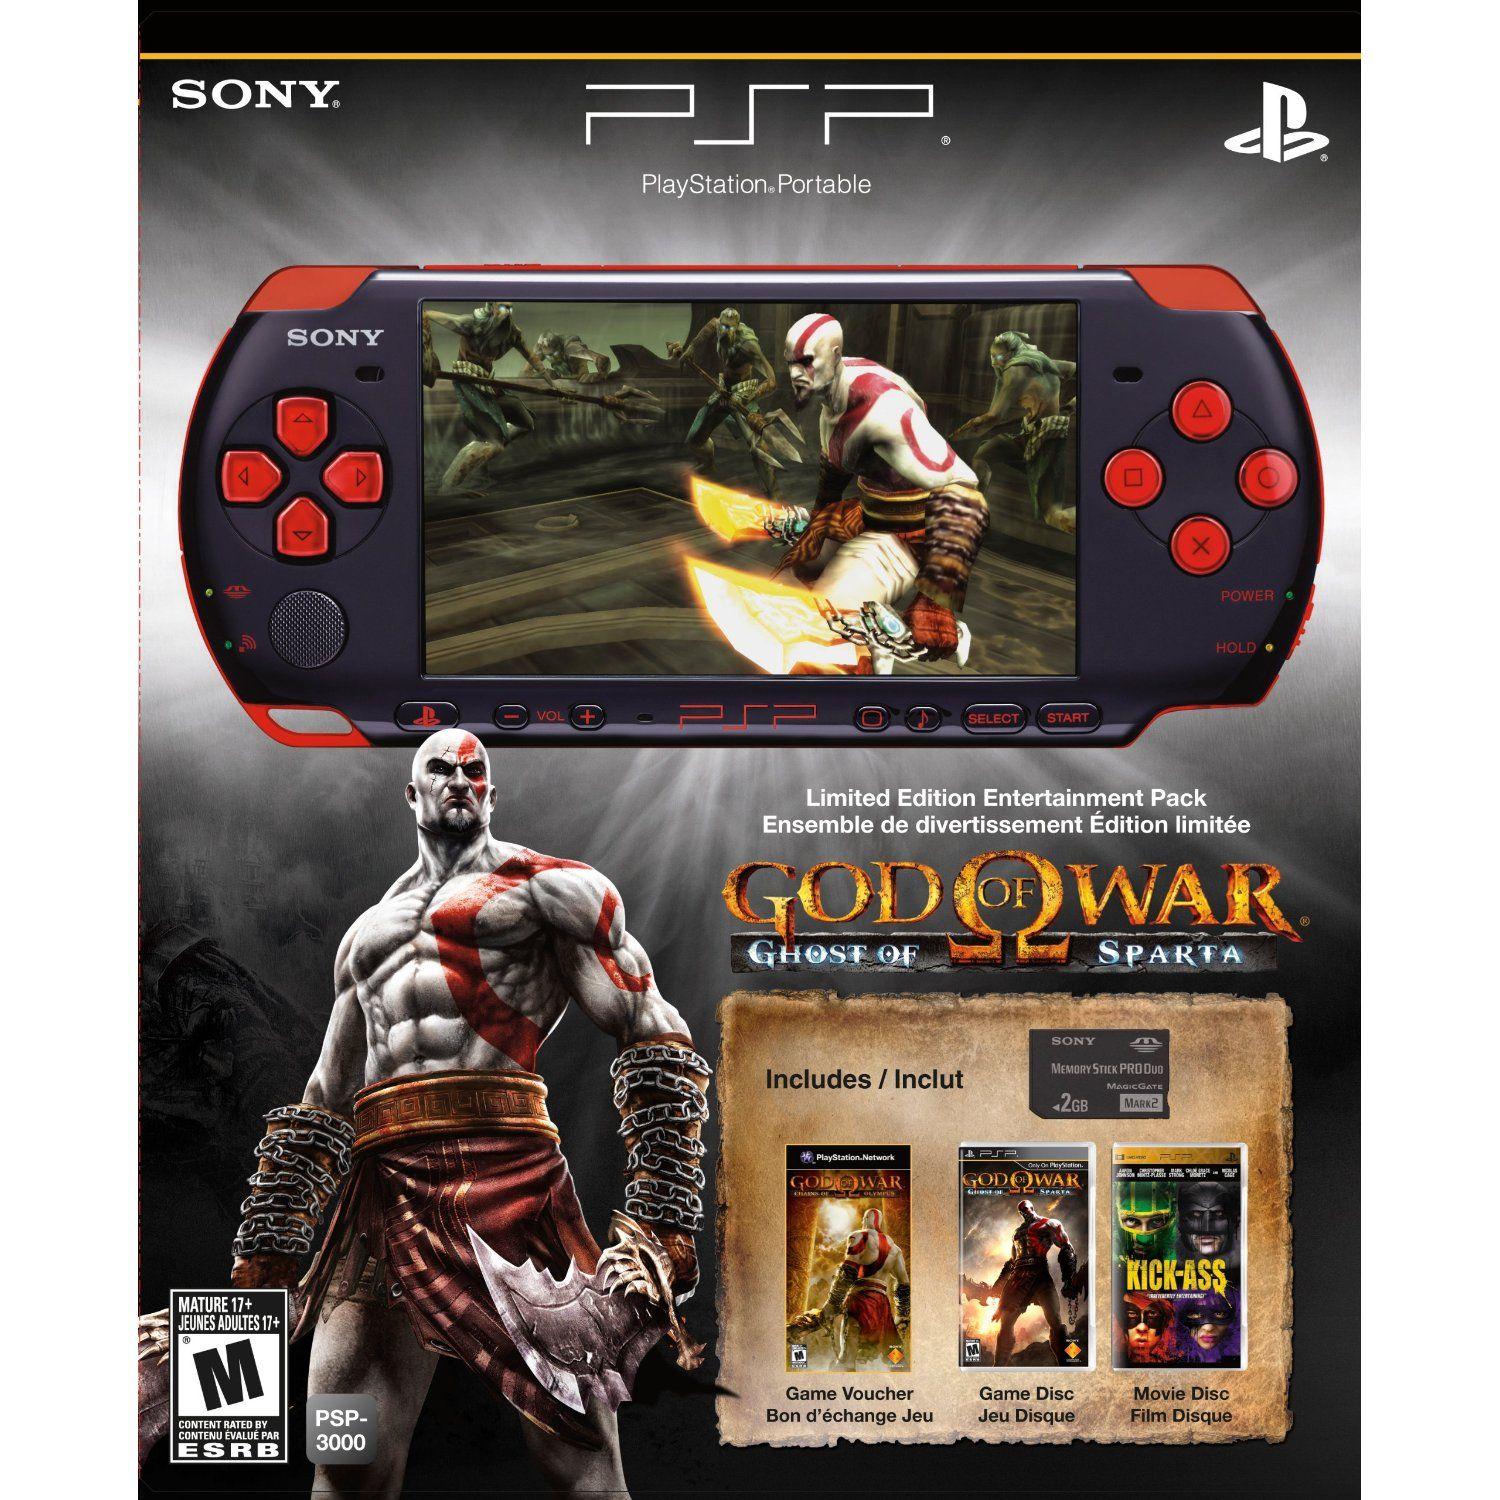 PlayStation Portable Limited Edition God of War Ghost of